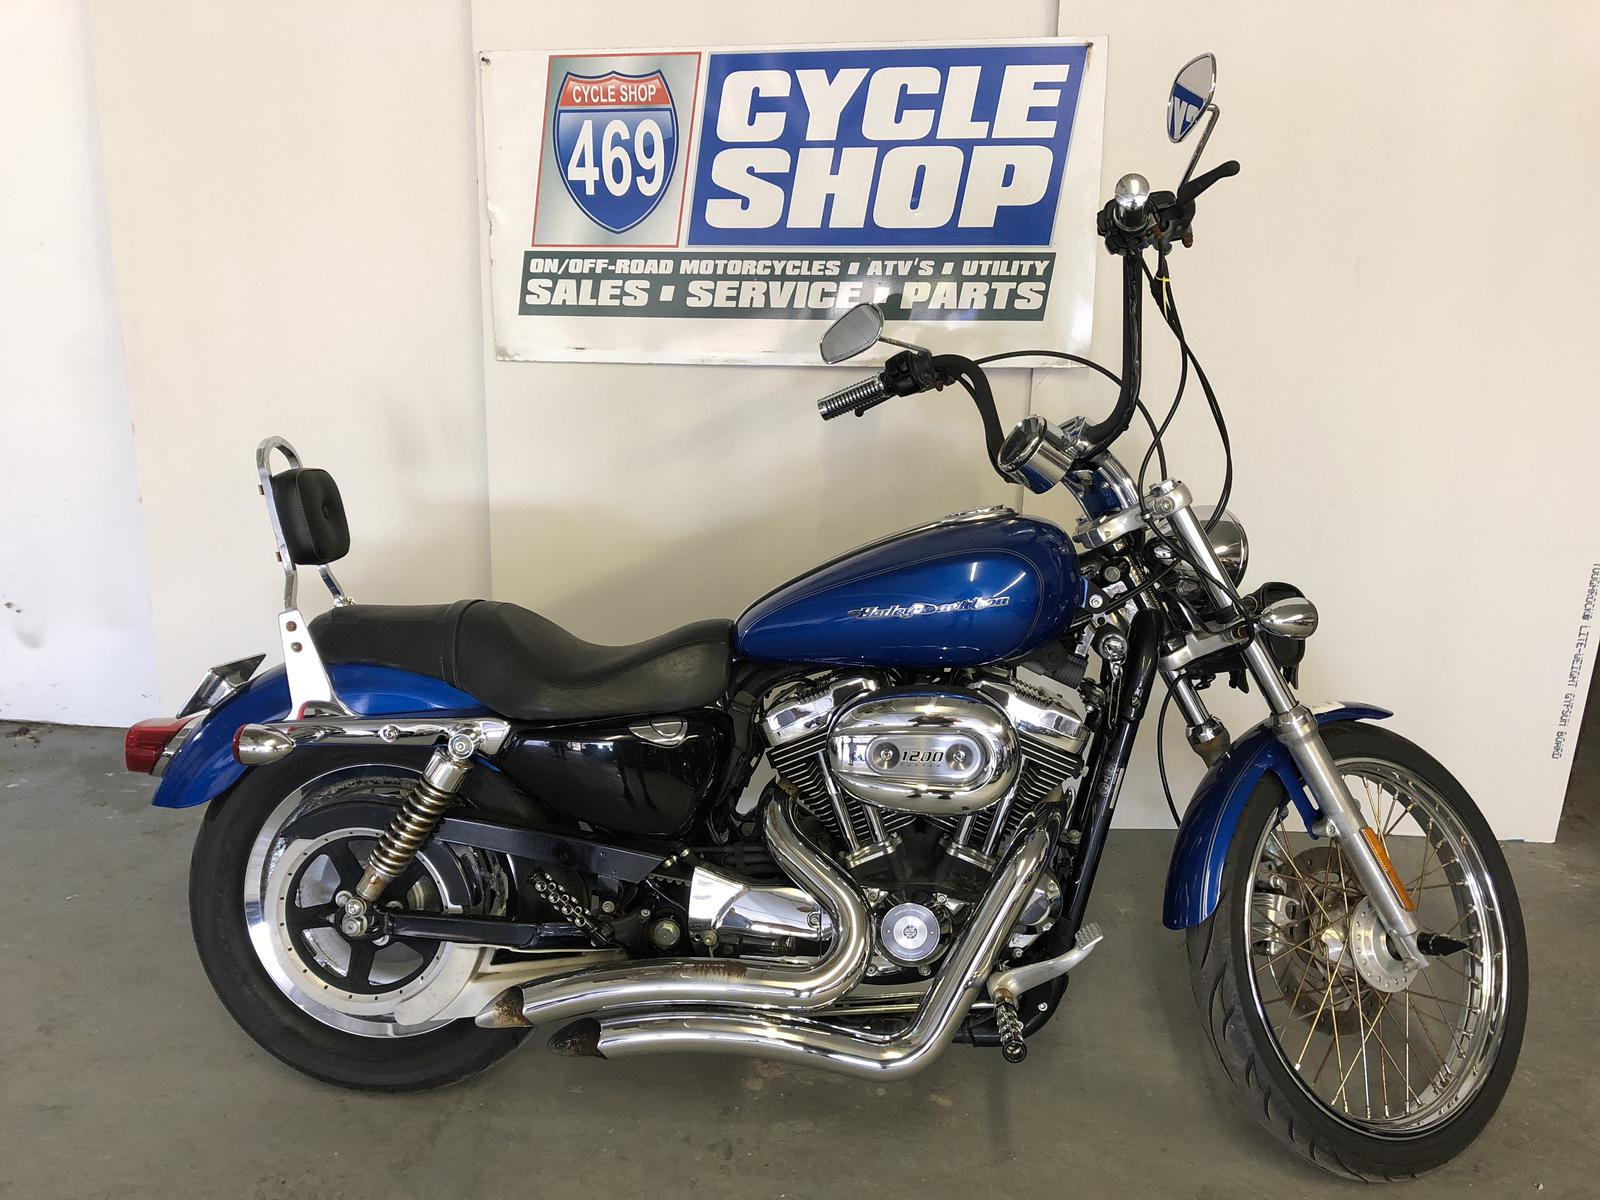 2007 Harley-Davidson® XL 1200C SPORTSTER - 469 Cycle Shop